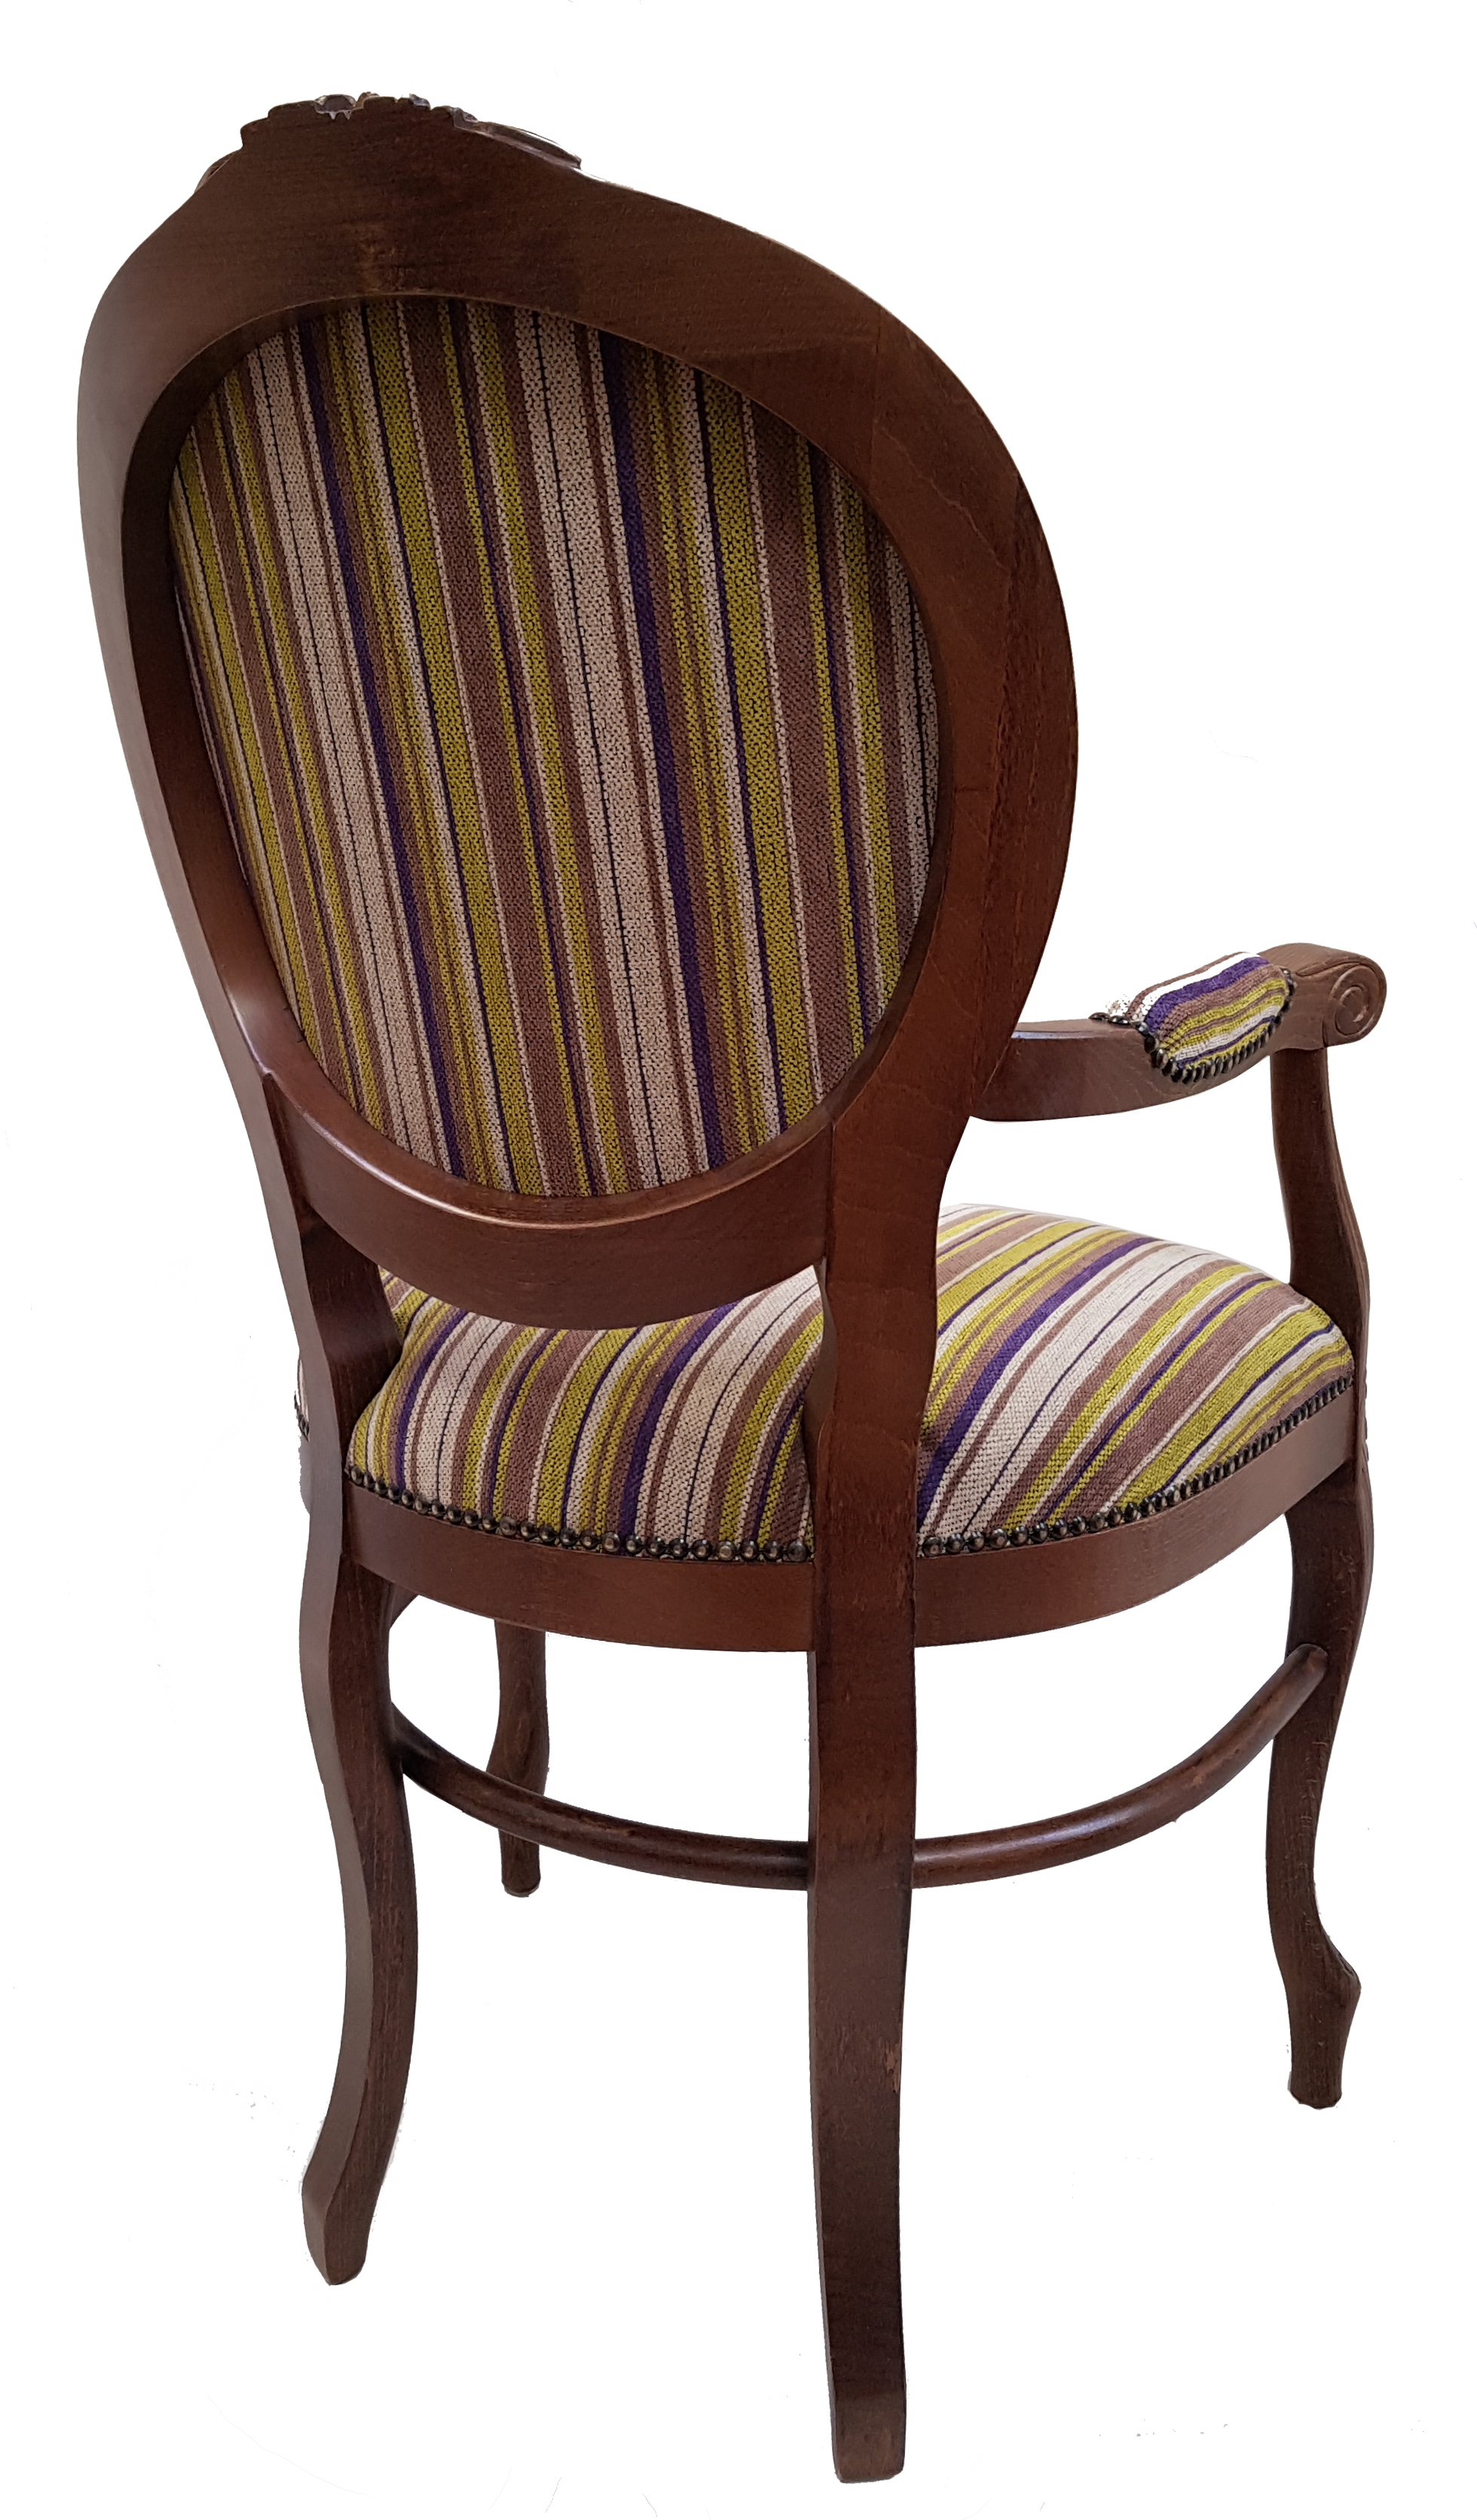 Brianzola arm chair in lime/purple